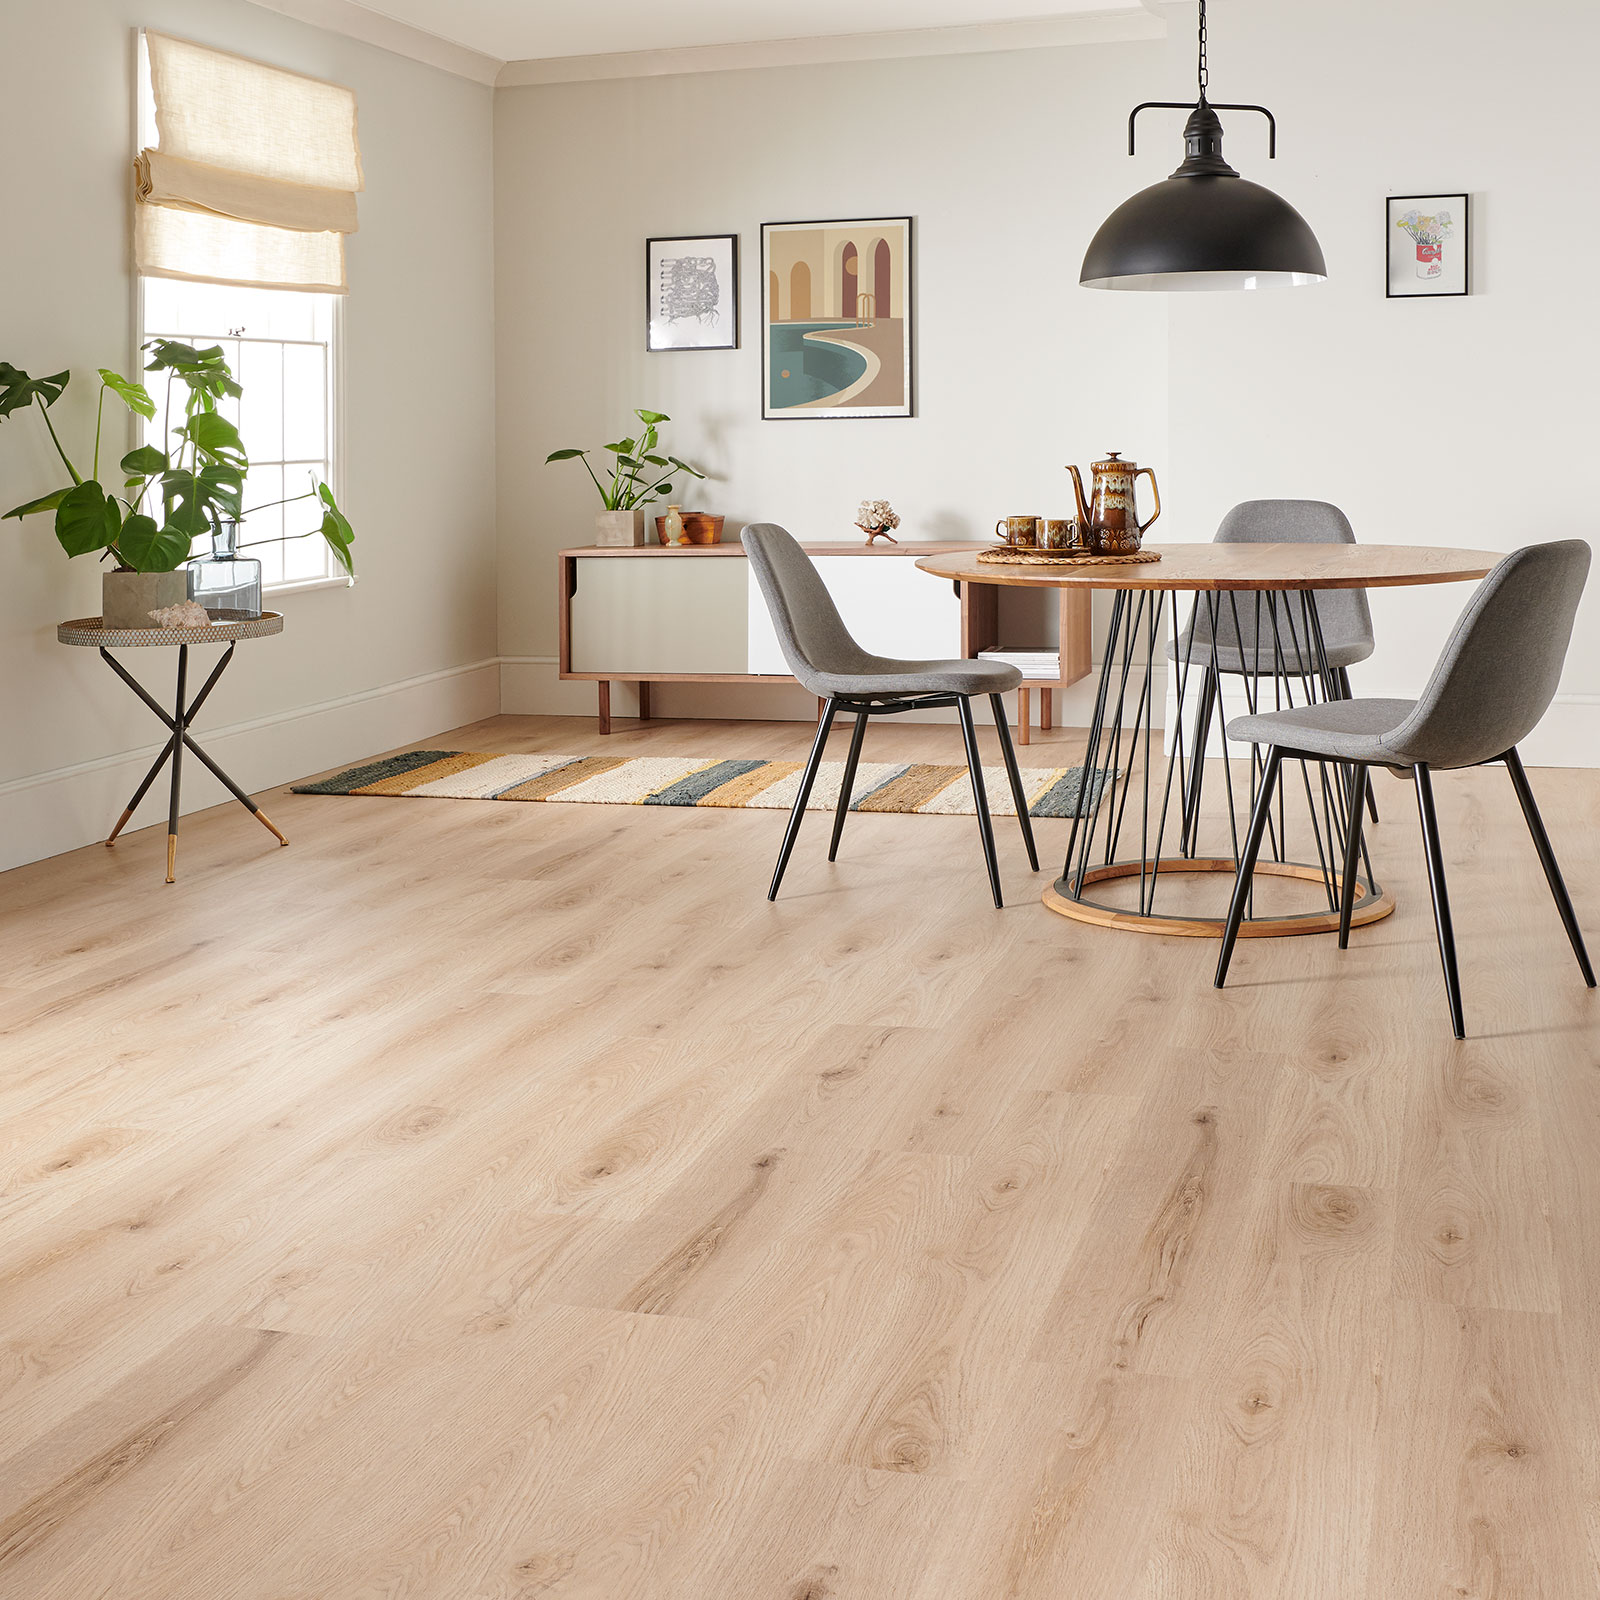 Hardwood Floor Color Trends 2020.Find The New Flooring Trends You Can Expect To See For 2020